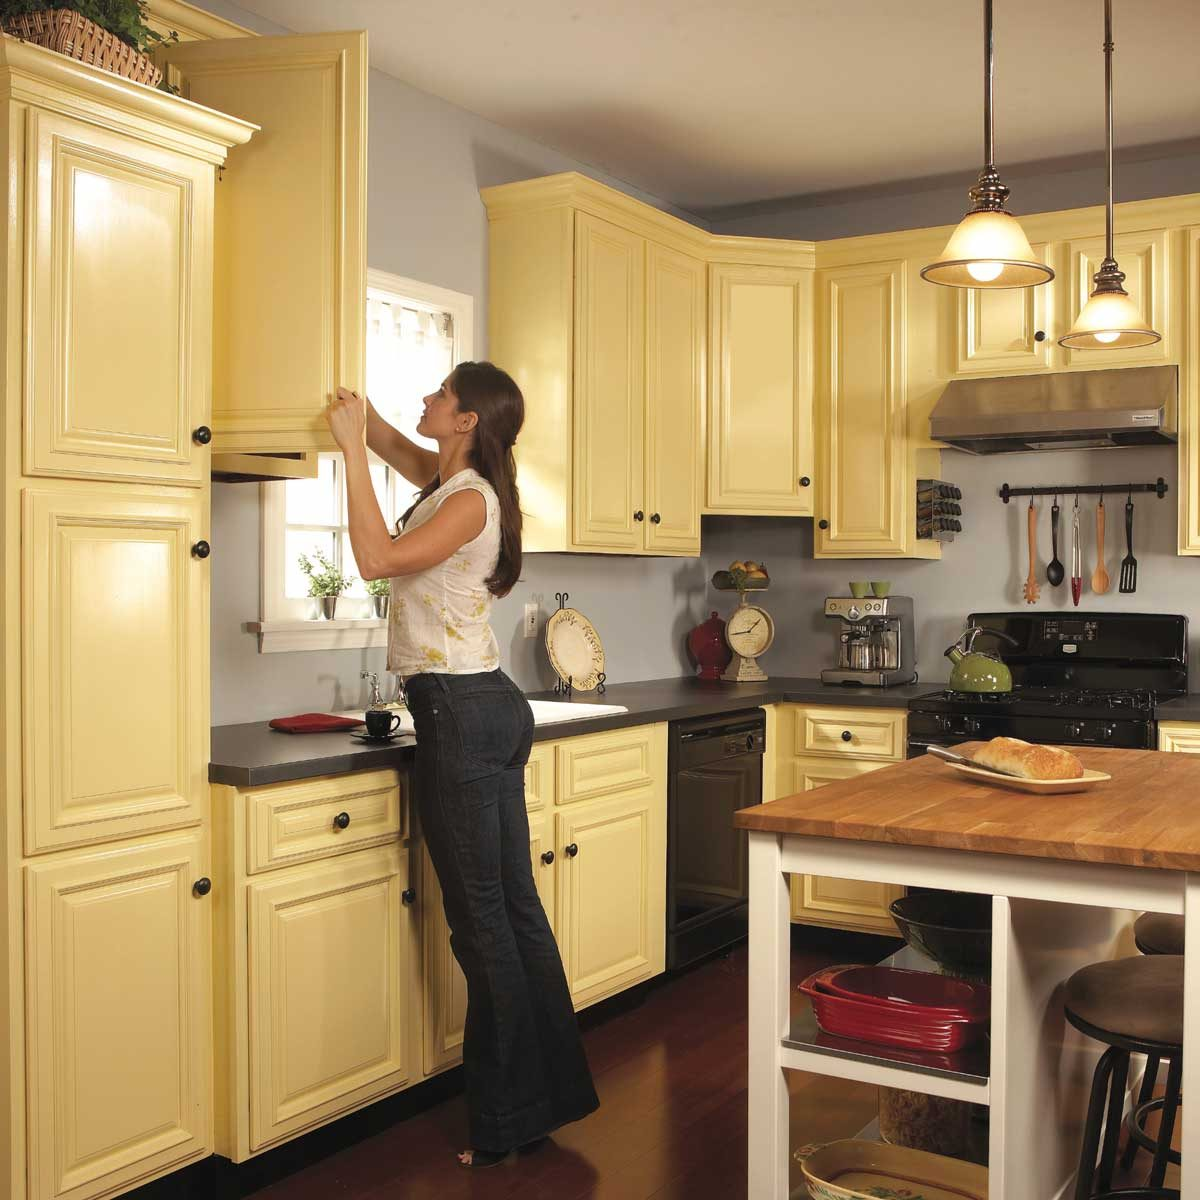 Spray Paint Kitchen Cabinets Diy, How To Paint Kitchen Cabinets White With A Sprayer